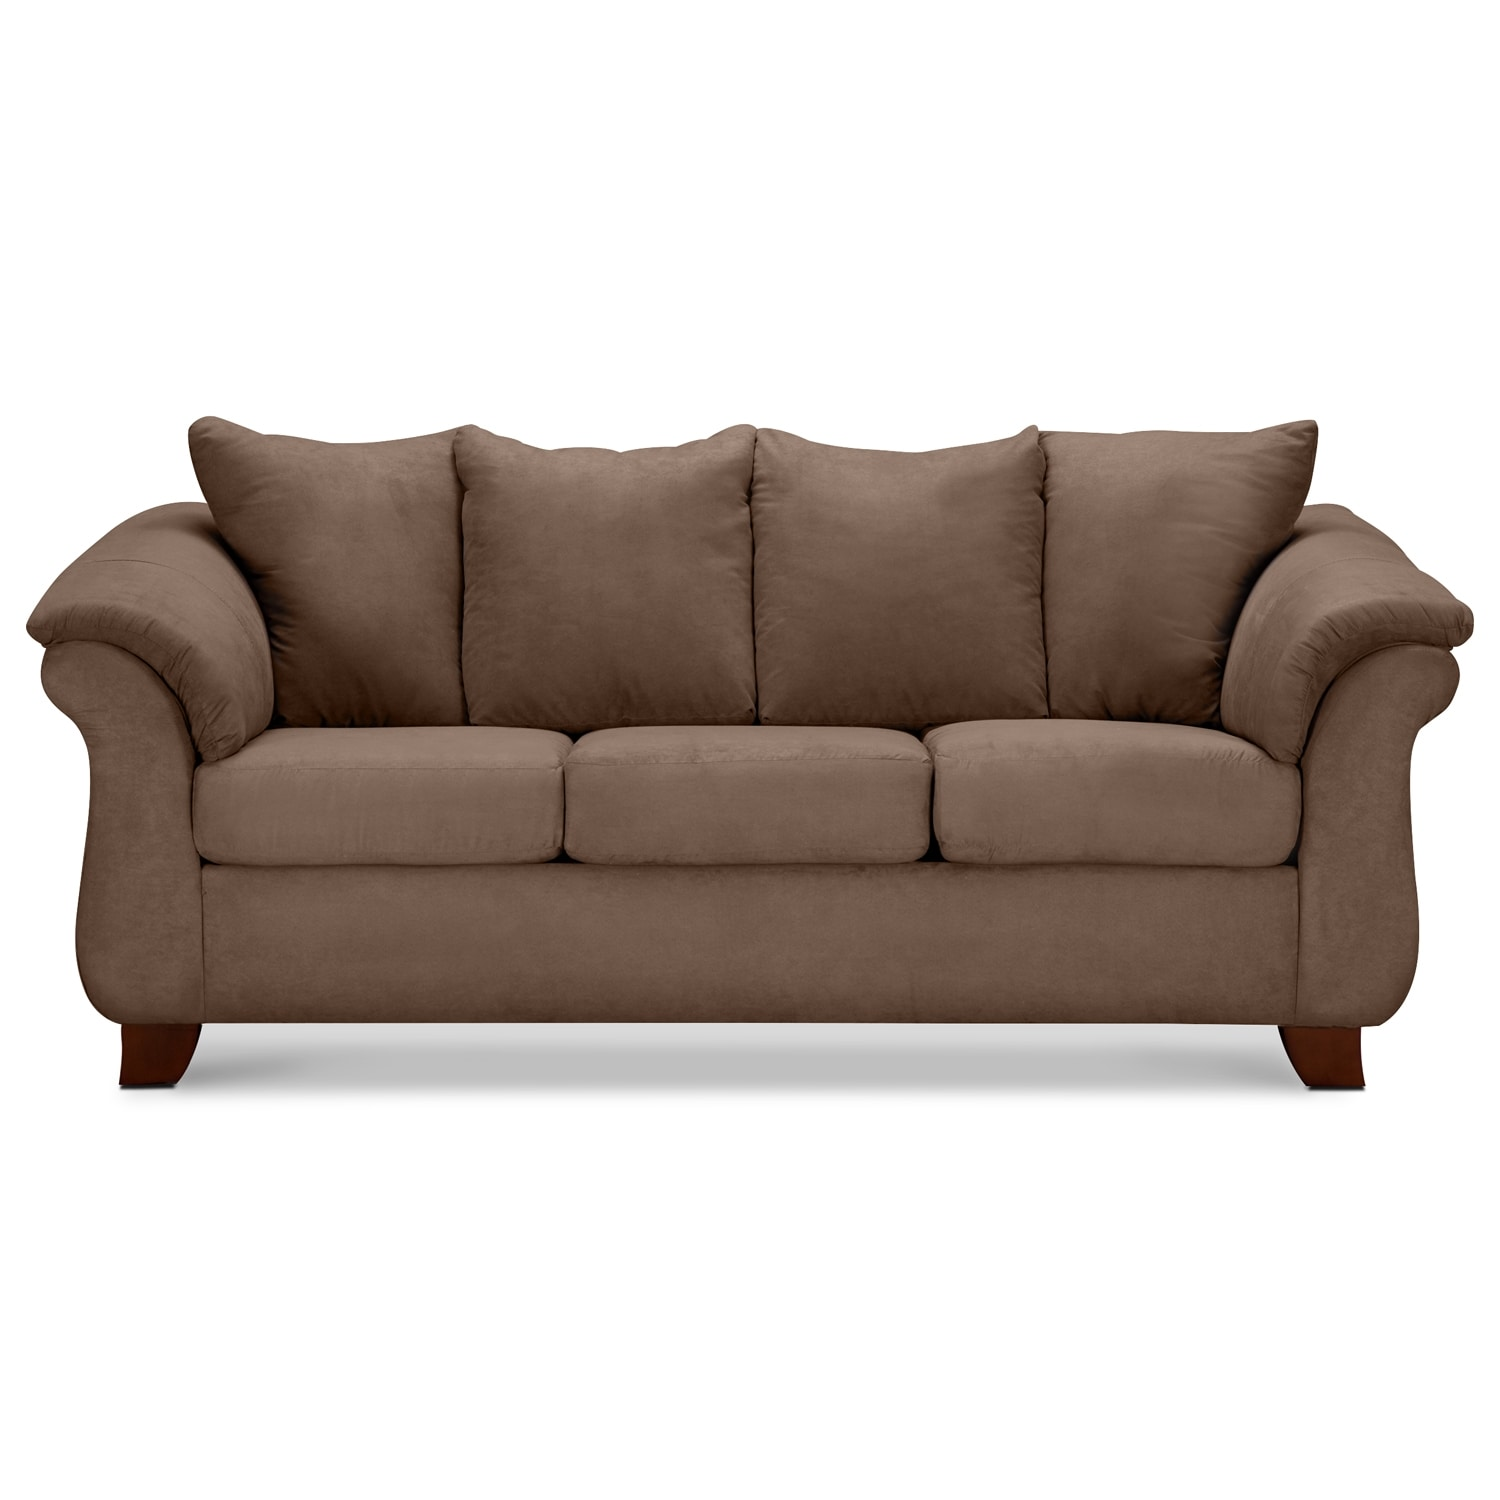 adrian sofa taupe american signature furniture. Black Bedroom Furniture Sets. Home Design Ideas